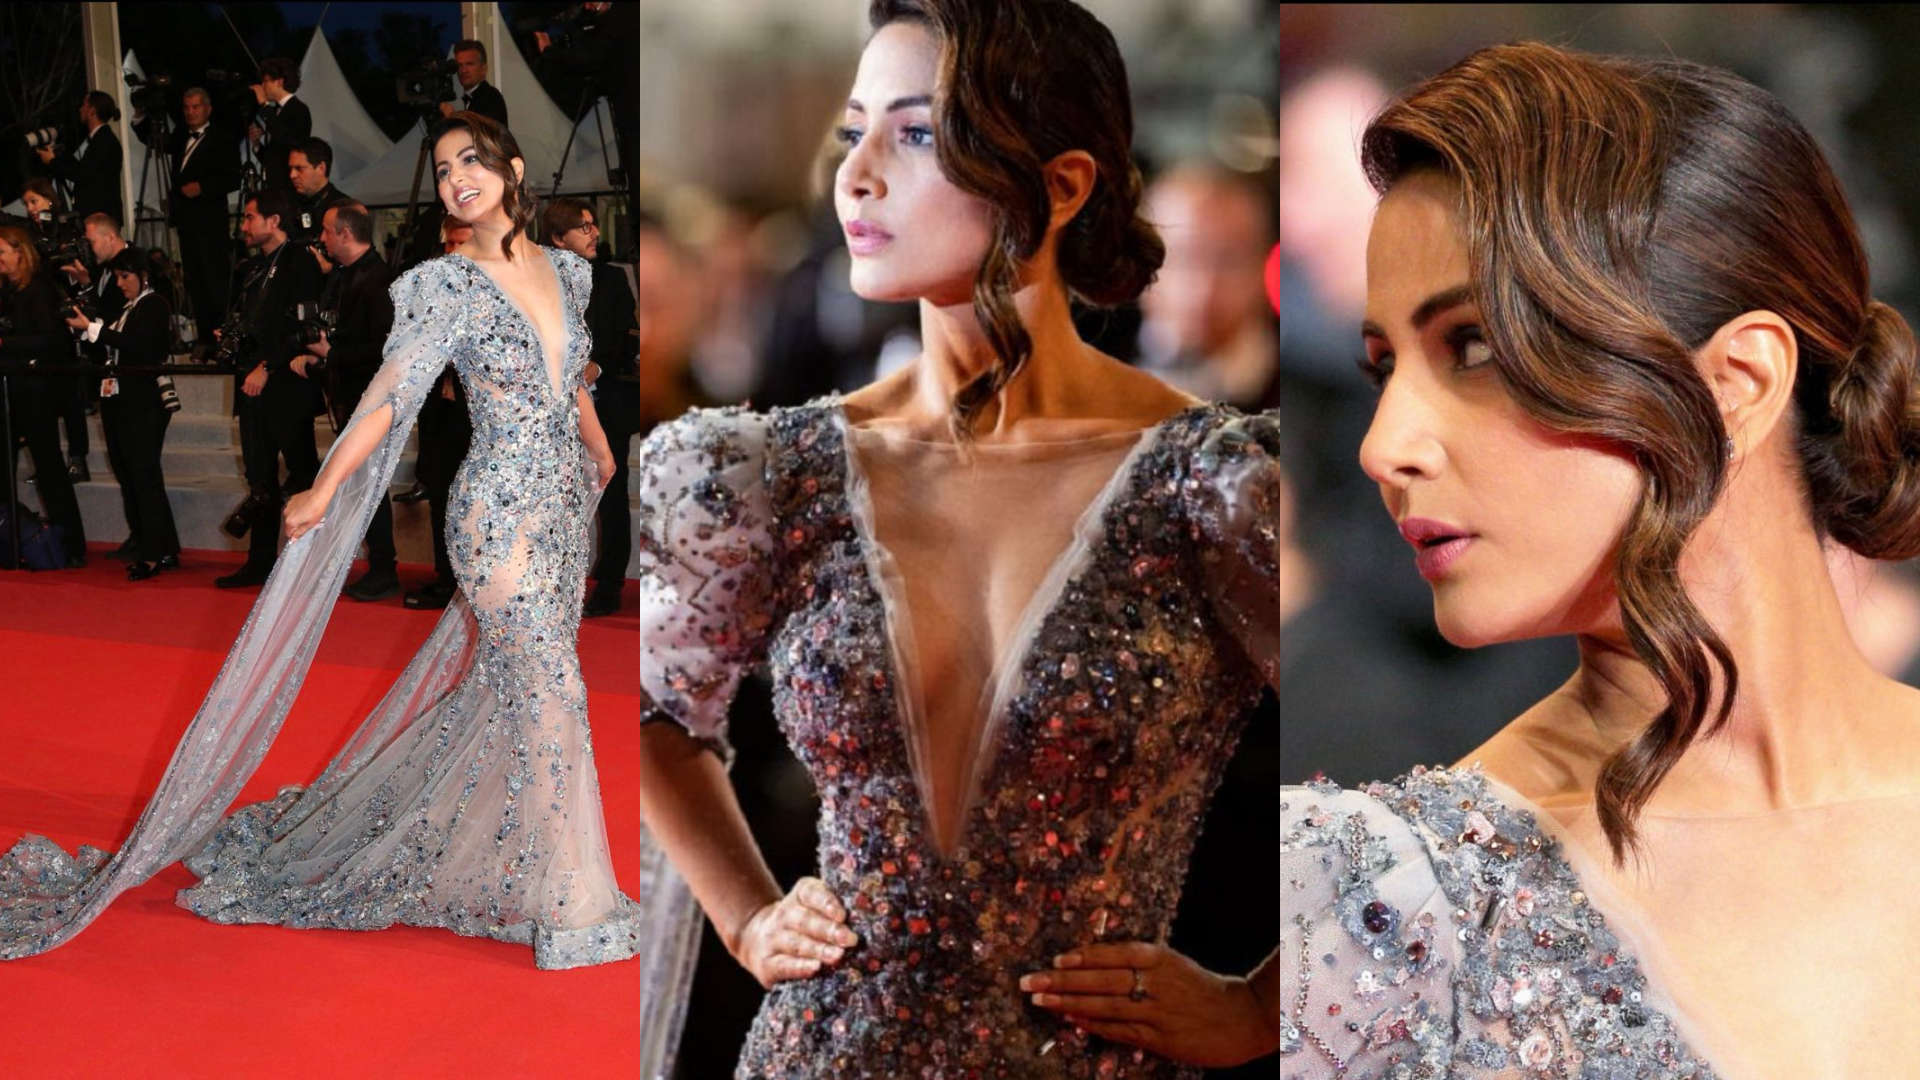 Hina Khan makes a stunning debut at the 2019 Cannes red carpet